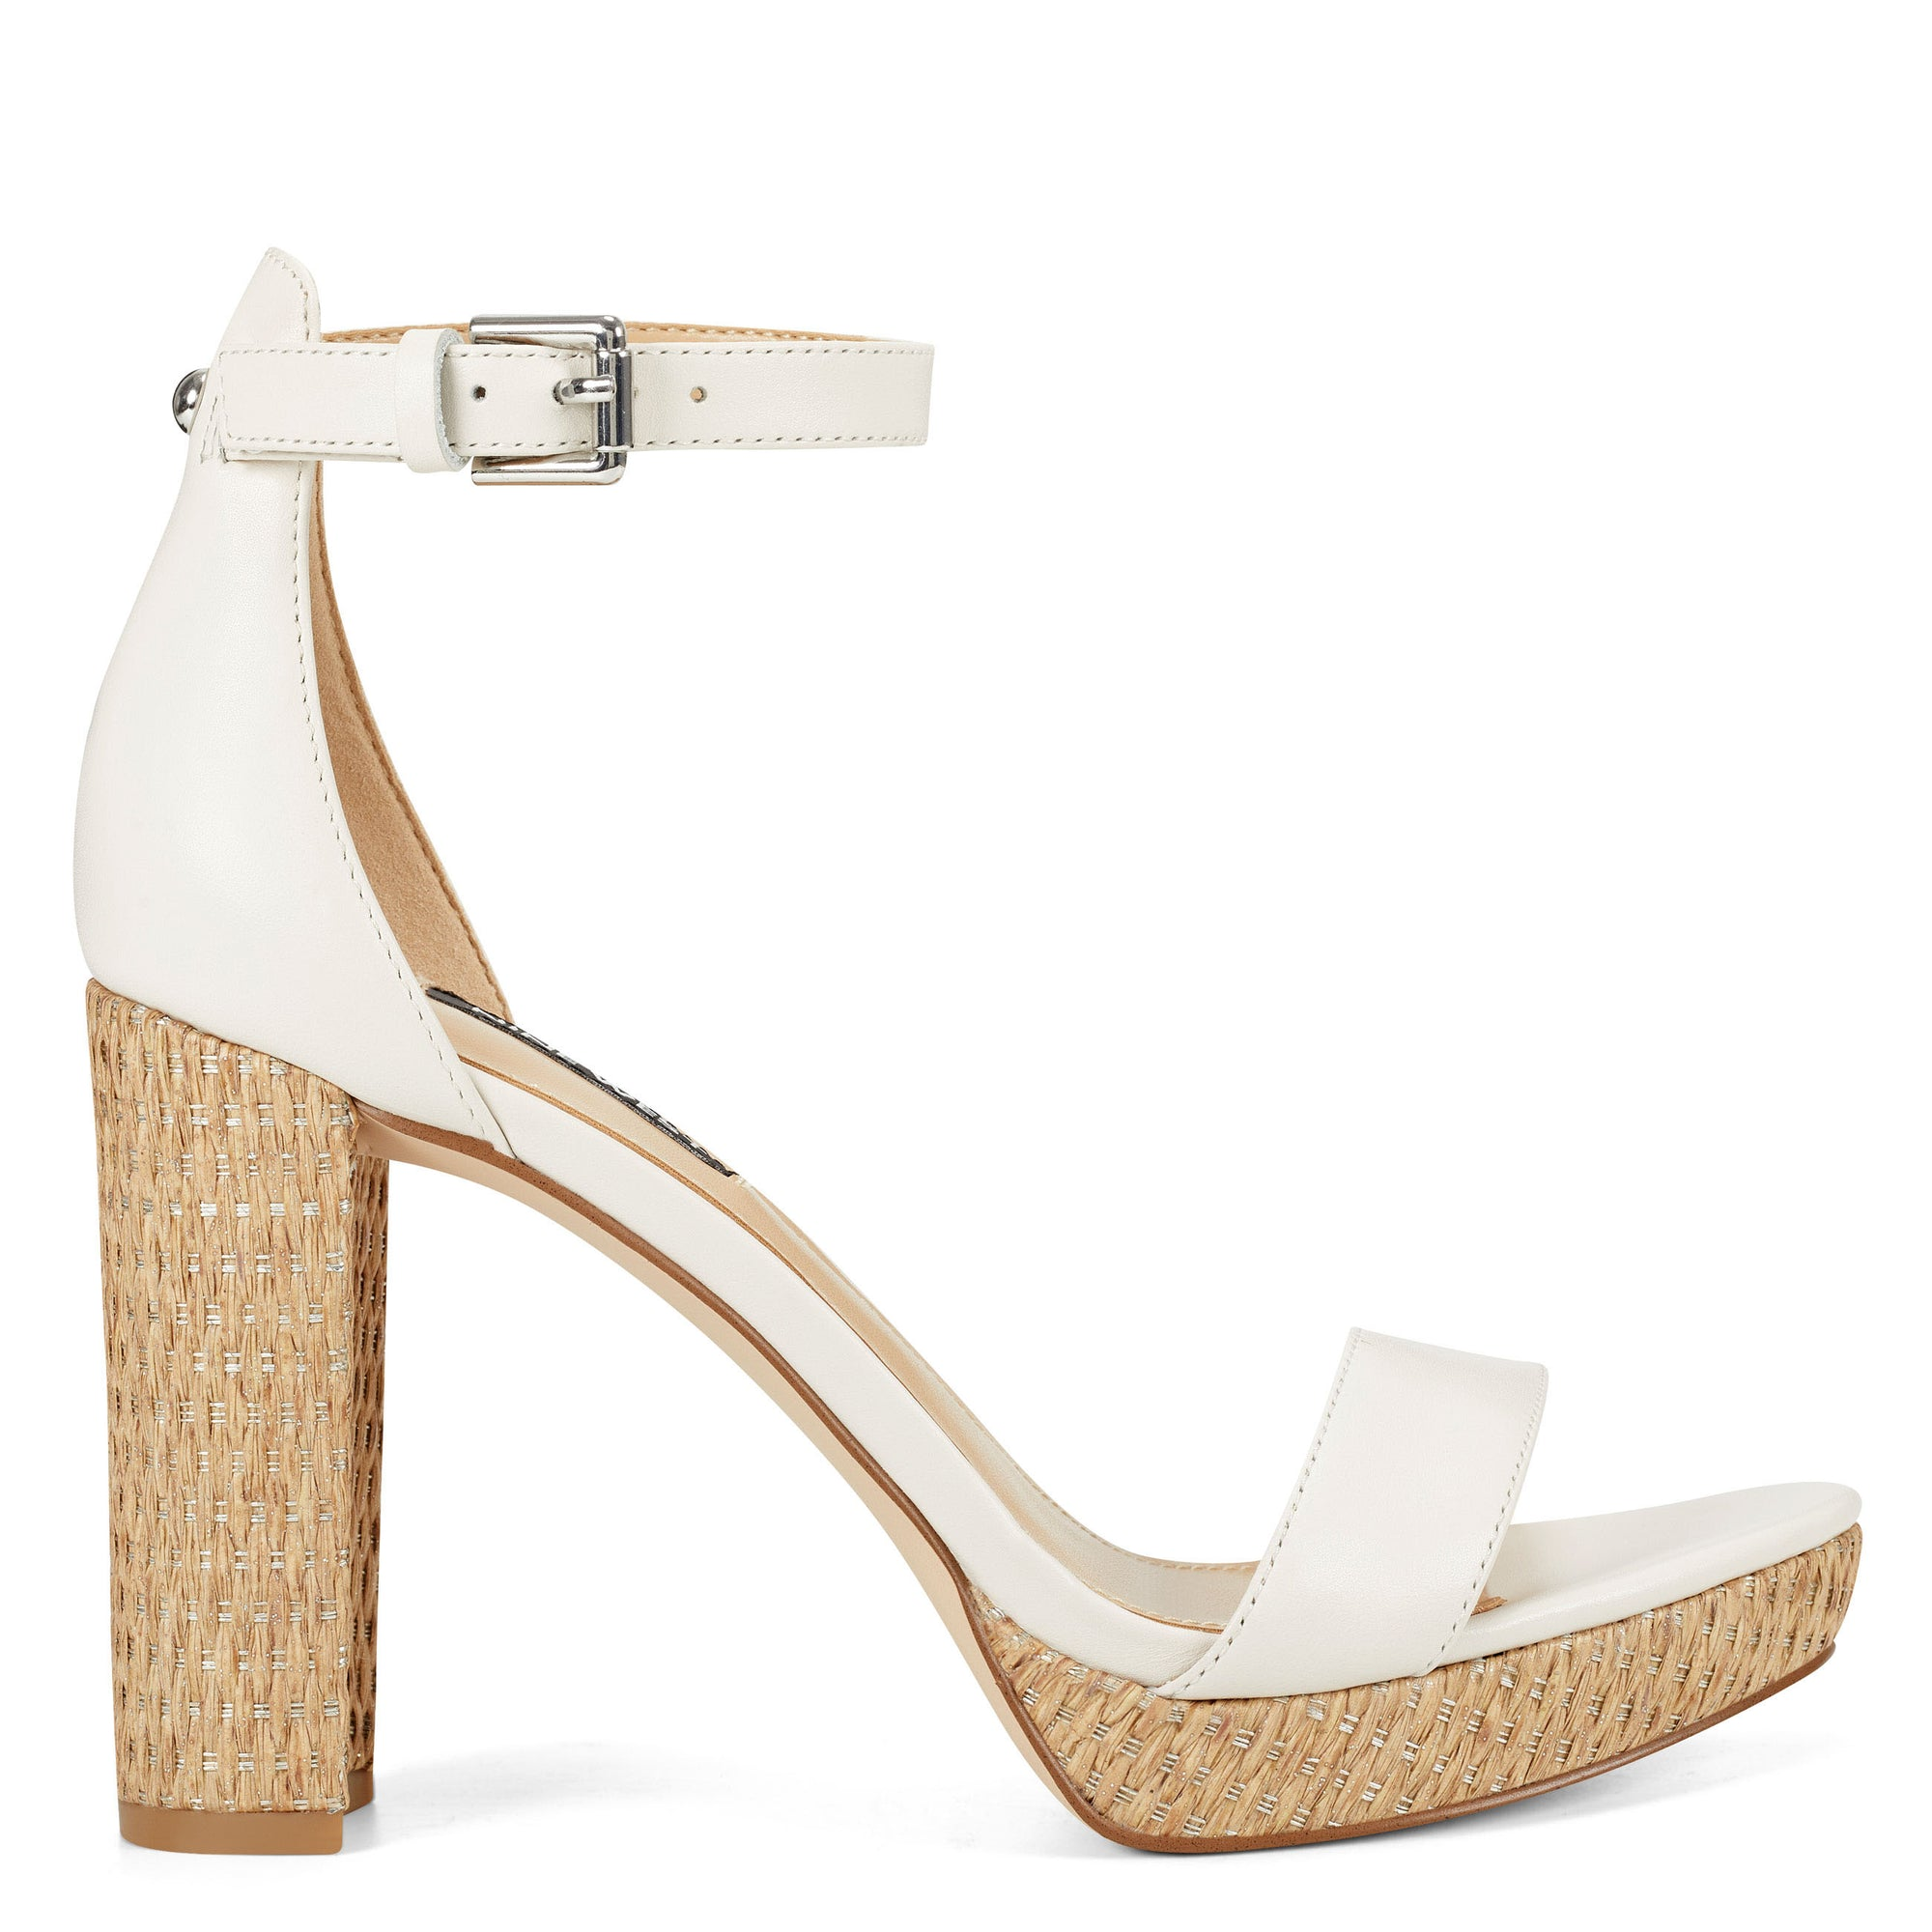 dempsey-platform-sandals-in-bone